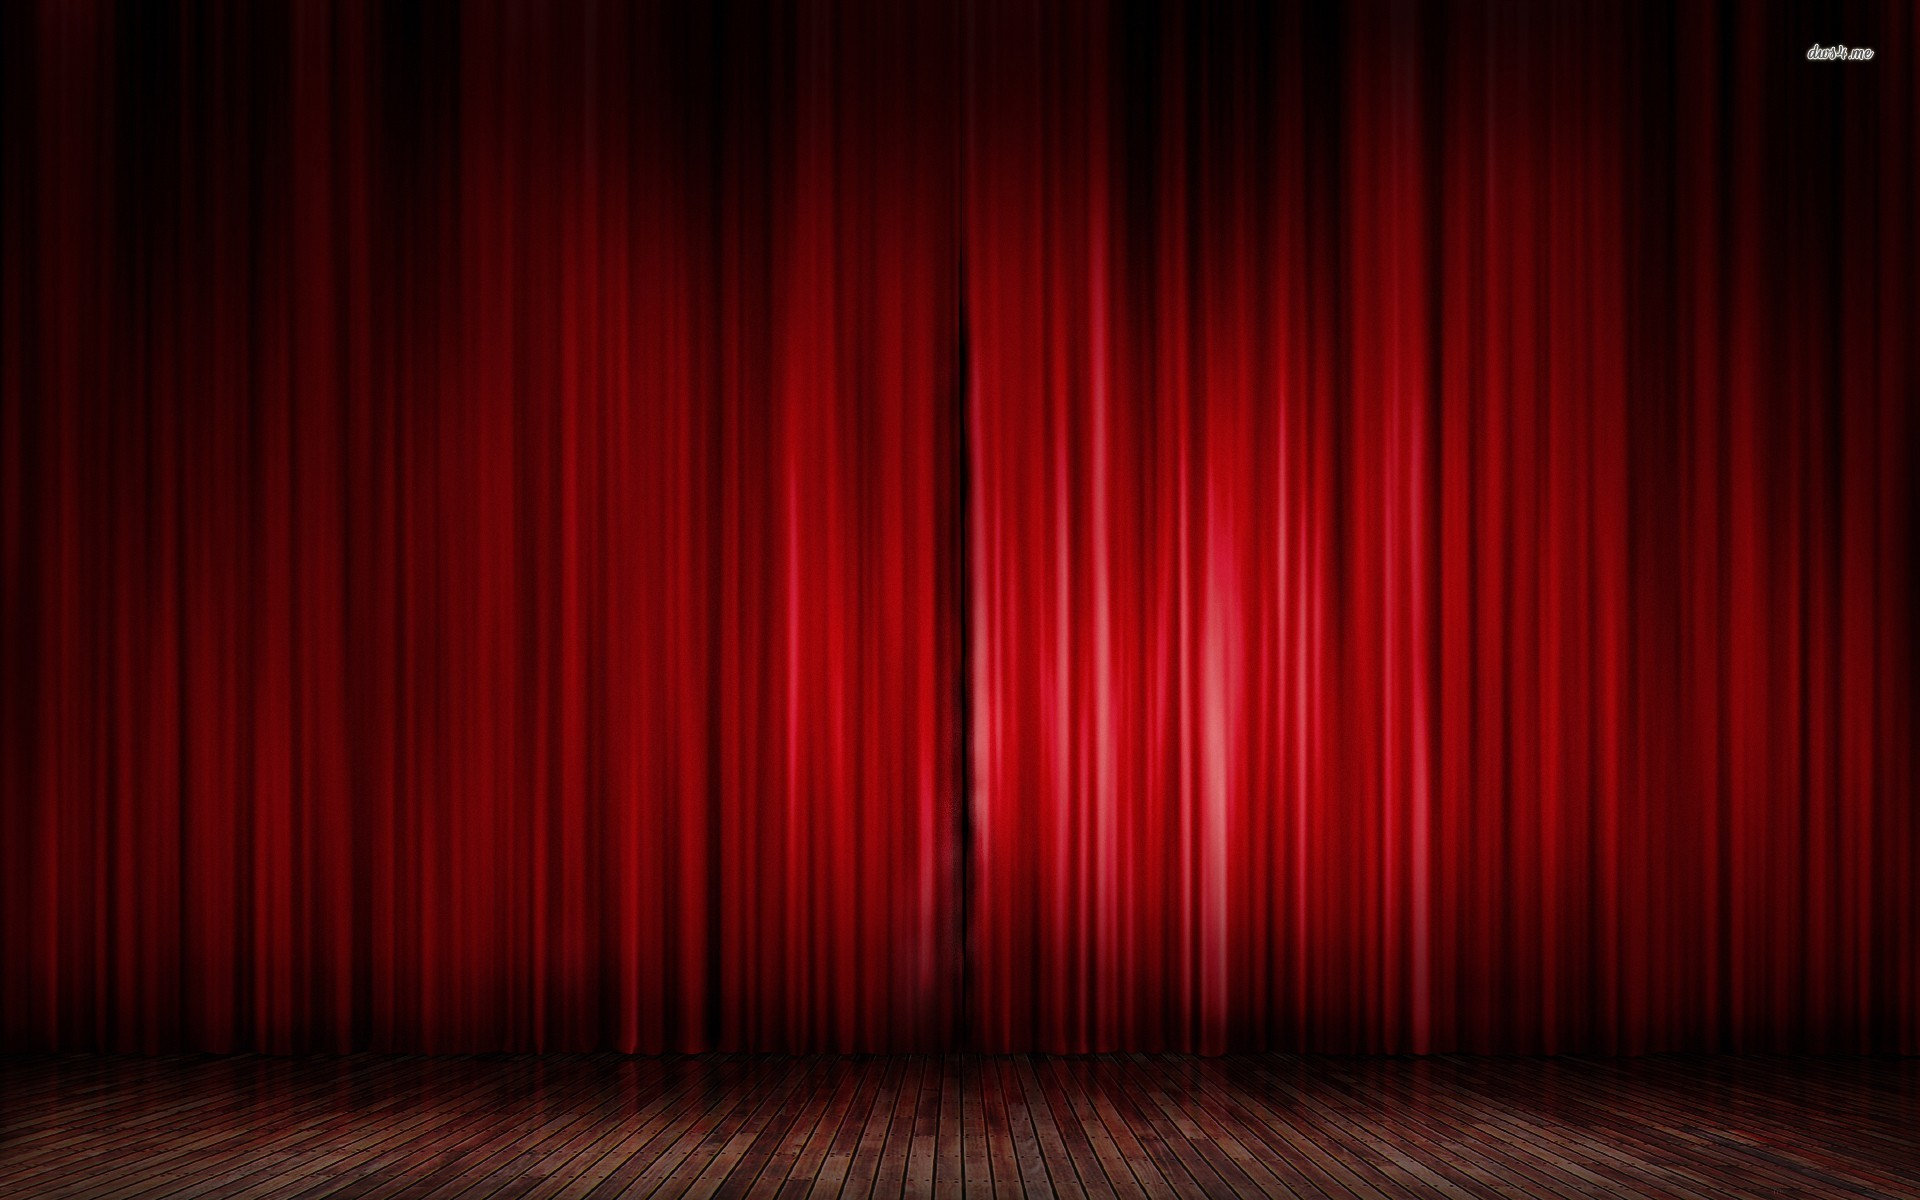 Red stage curtain with lights - Empty Stage Curtains With Lights Red Stage Curtain With Lights Empty Stage Curtains With Lights